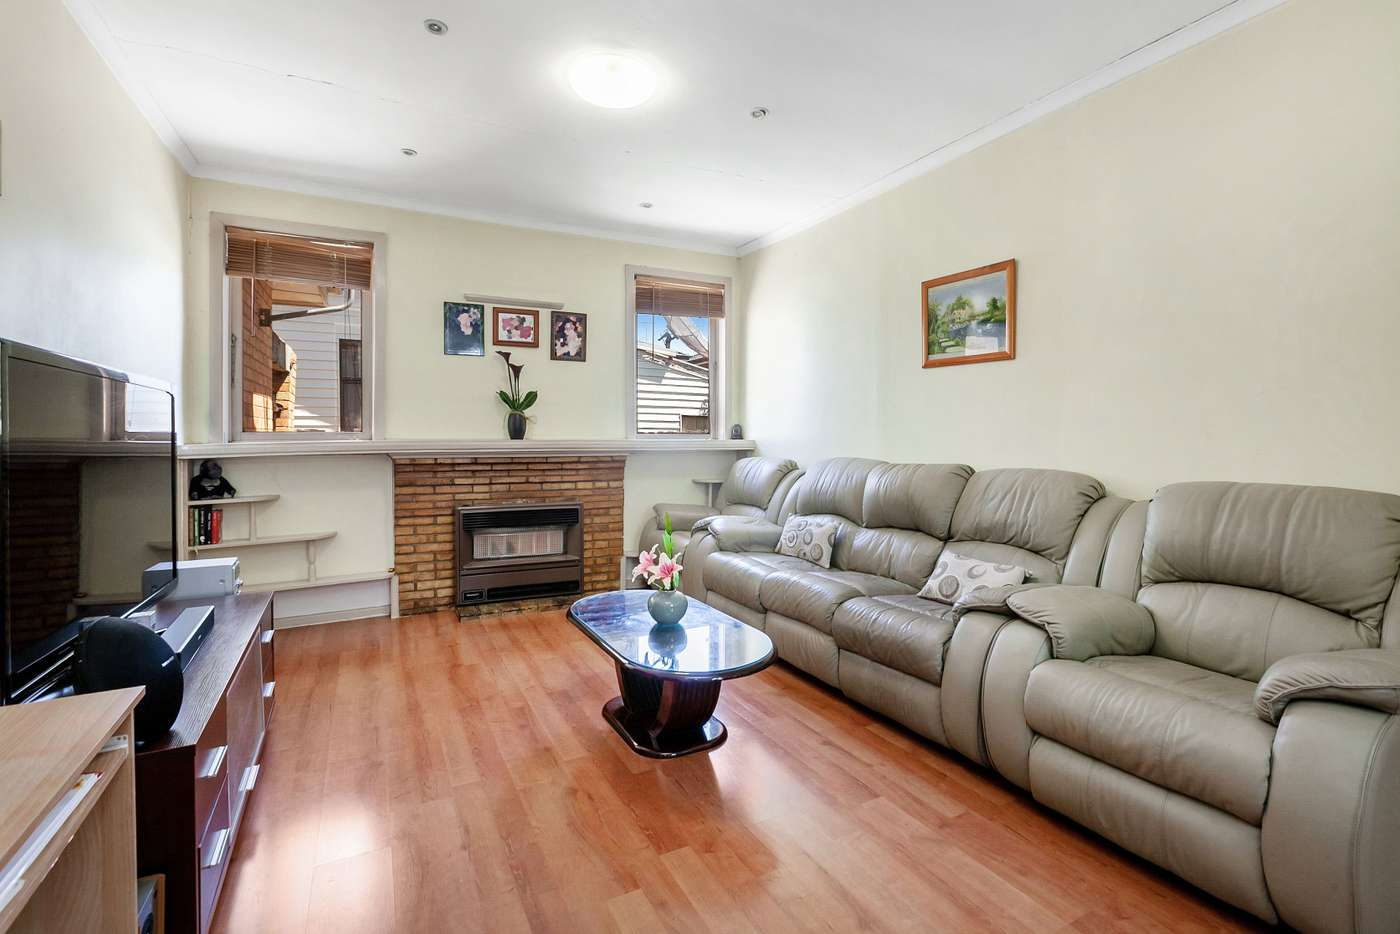 Sixth view of Homely house listing, 171 Spring Street, Reservoir VIC 3073